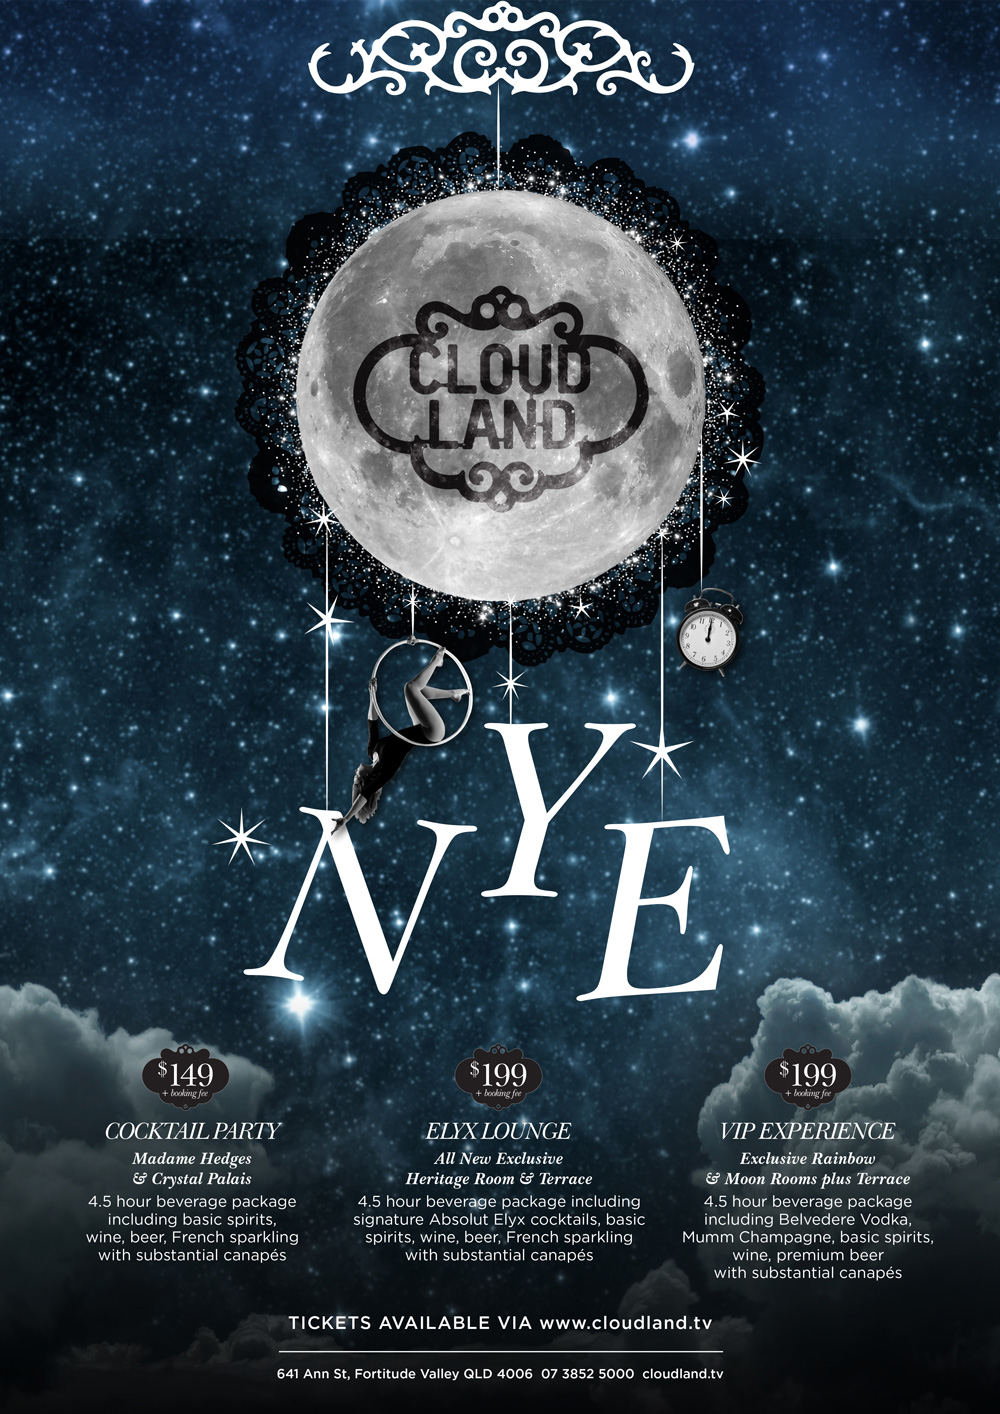 Cloudland New Year's Eve 2019